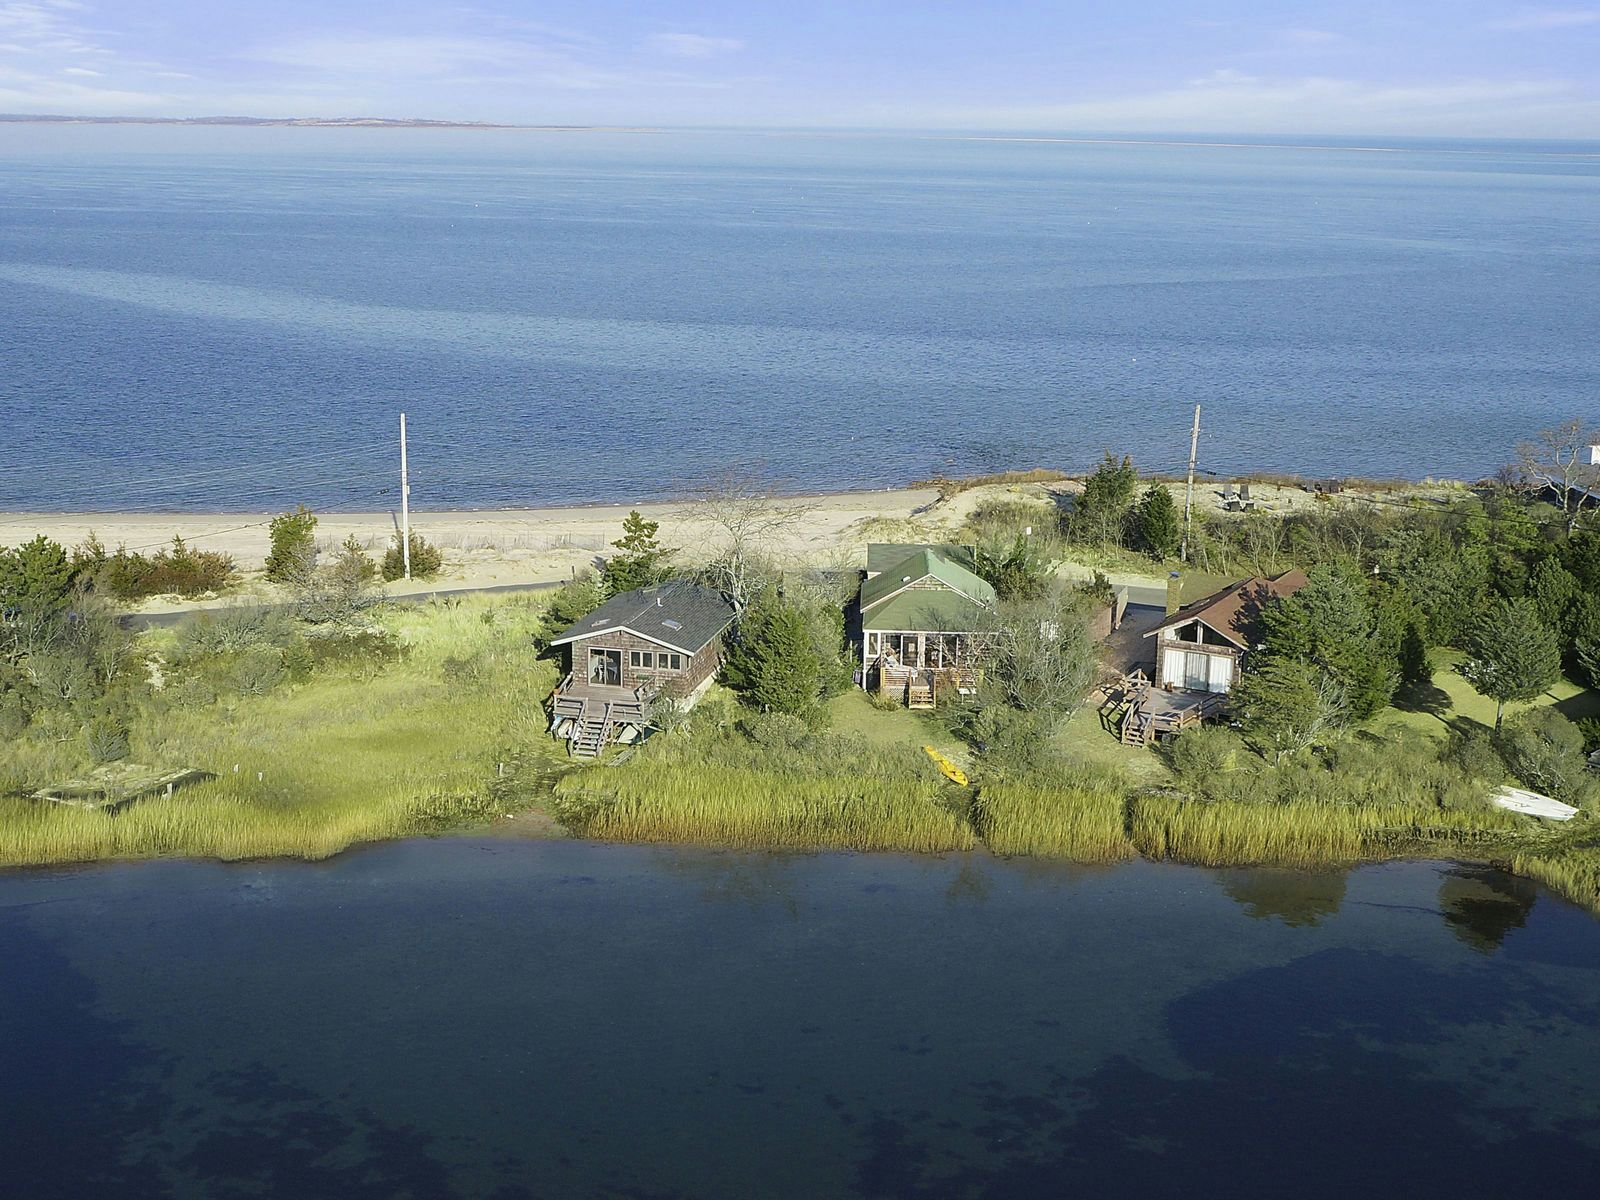 Louse Point Waterfront Perfection, East Hampton NY Single Family Home - Hamptons Real Estate